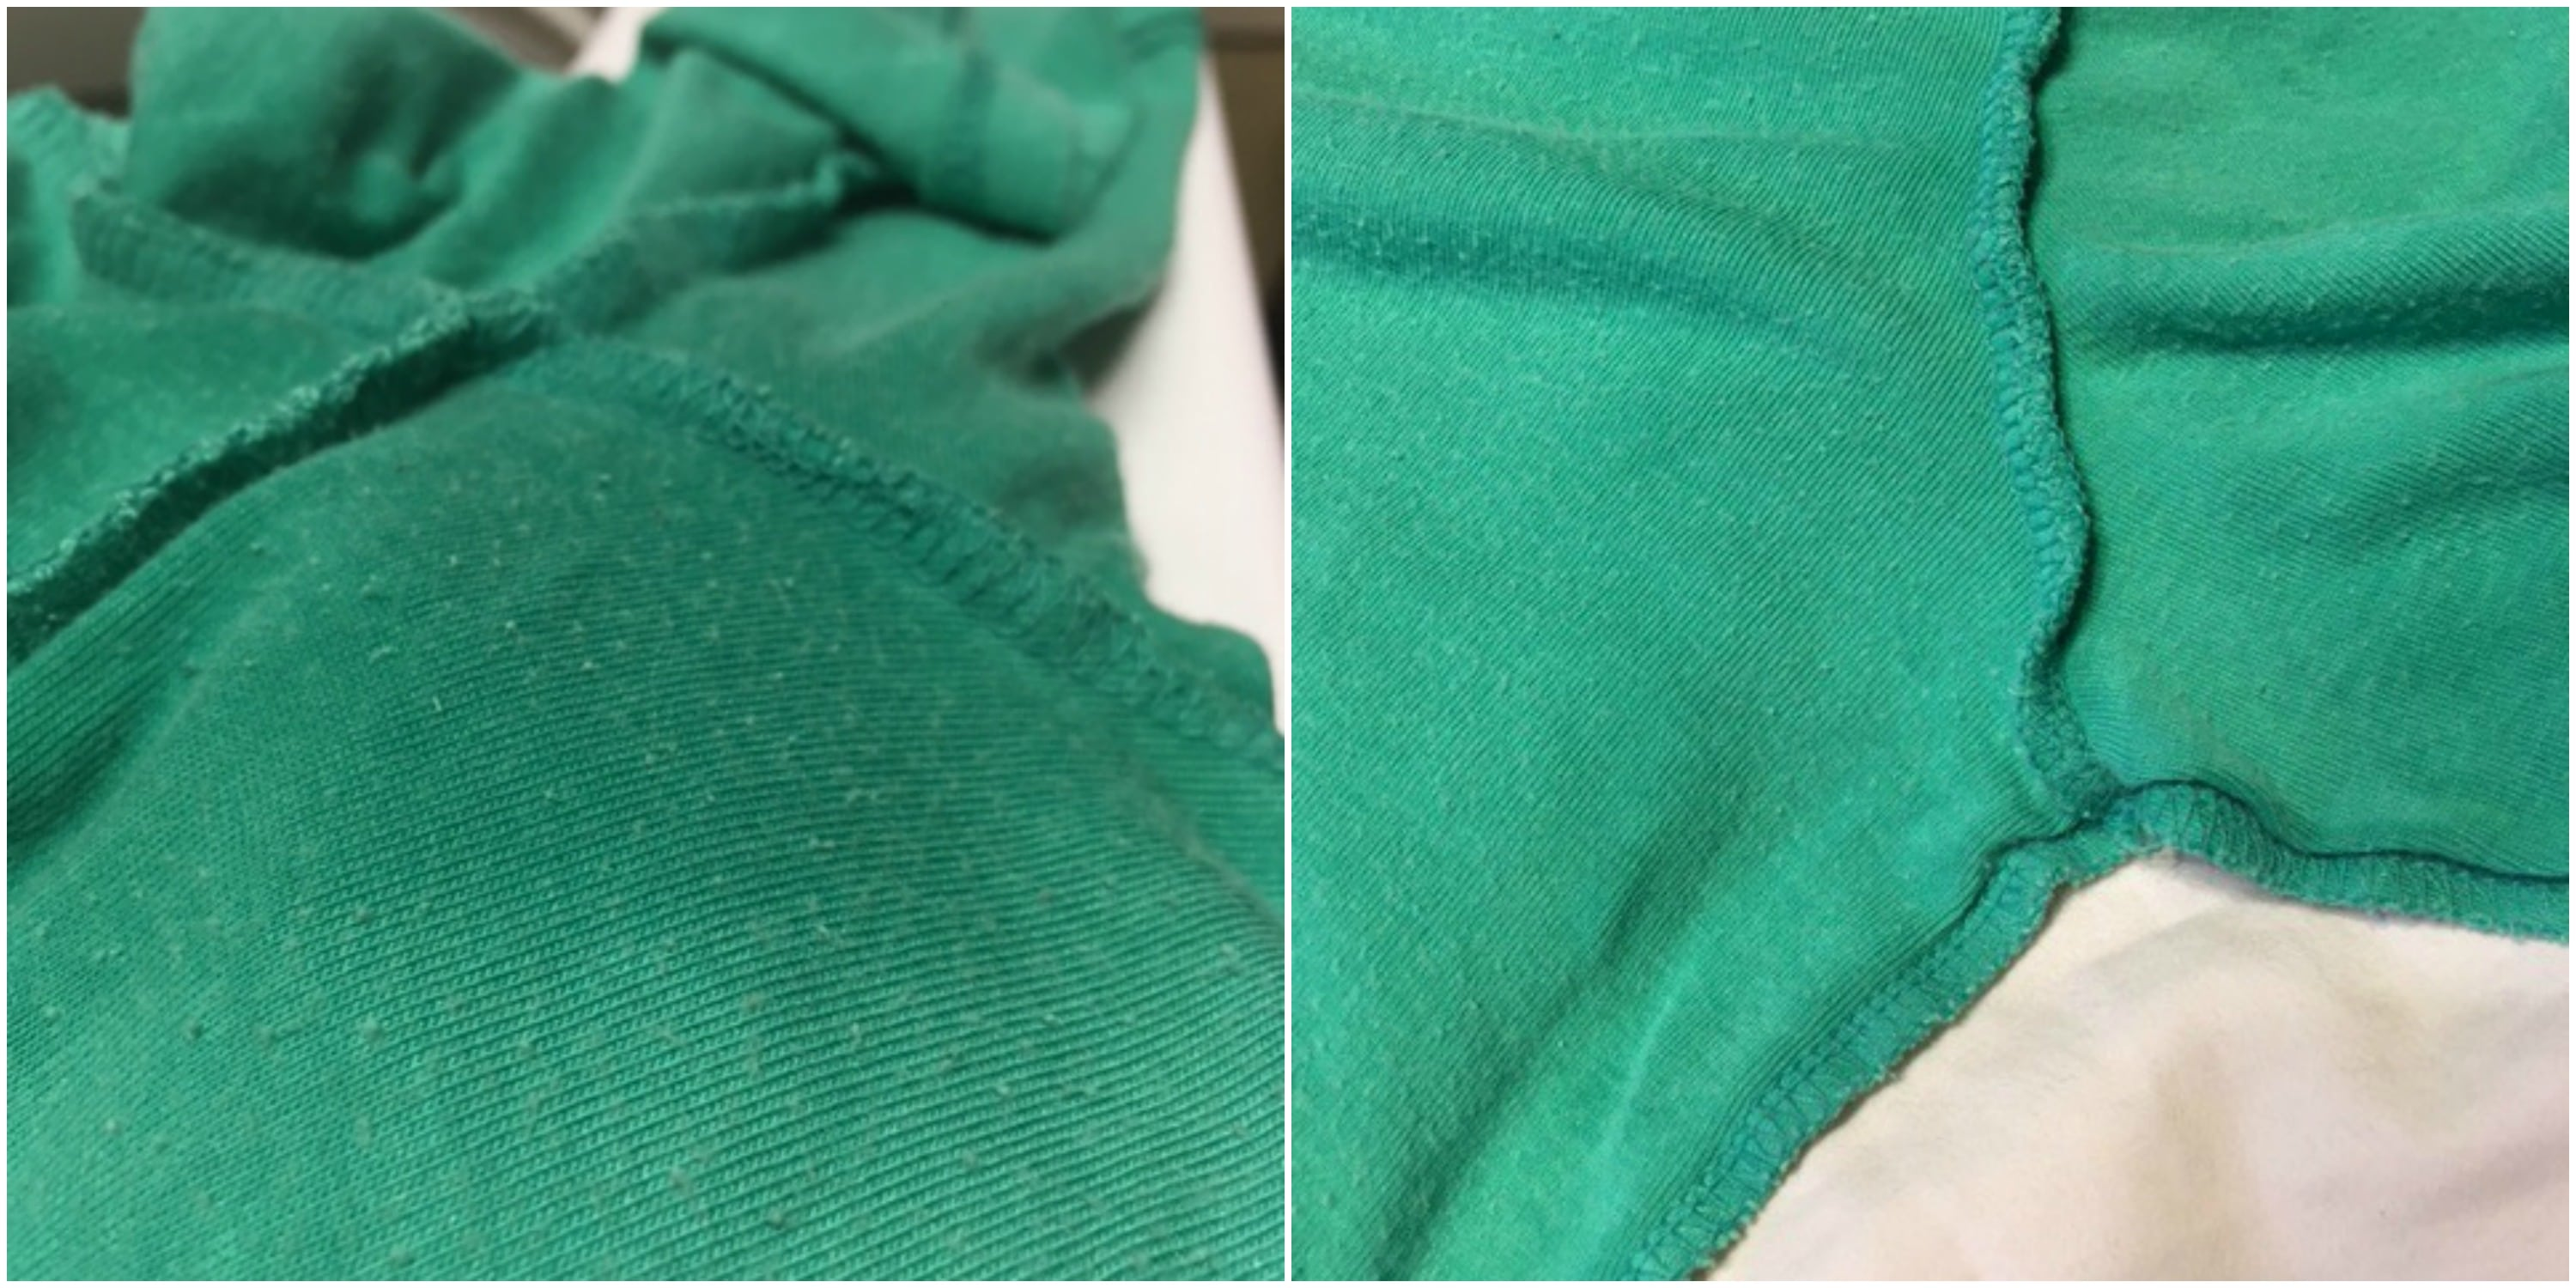 How to remove deodorant build up from dark clothes